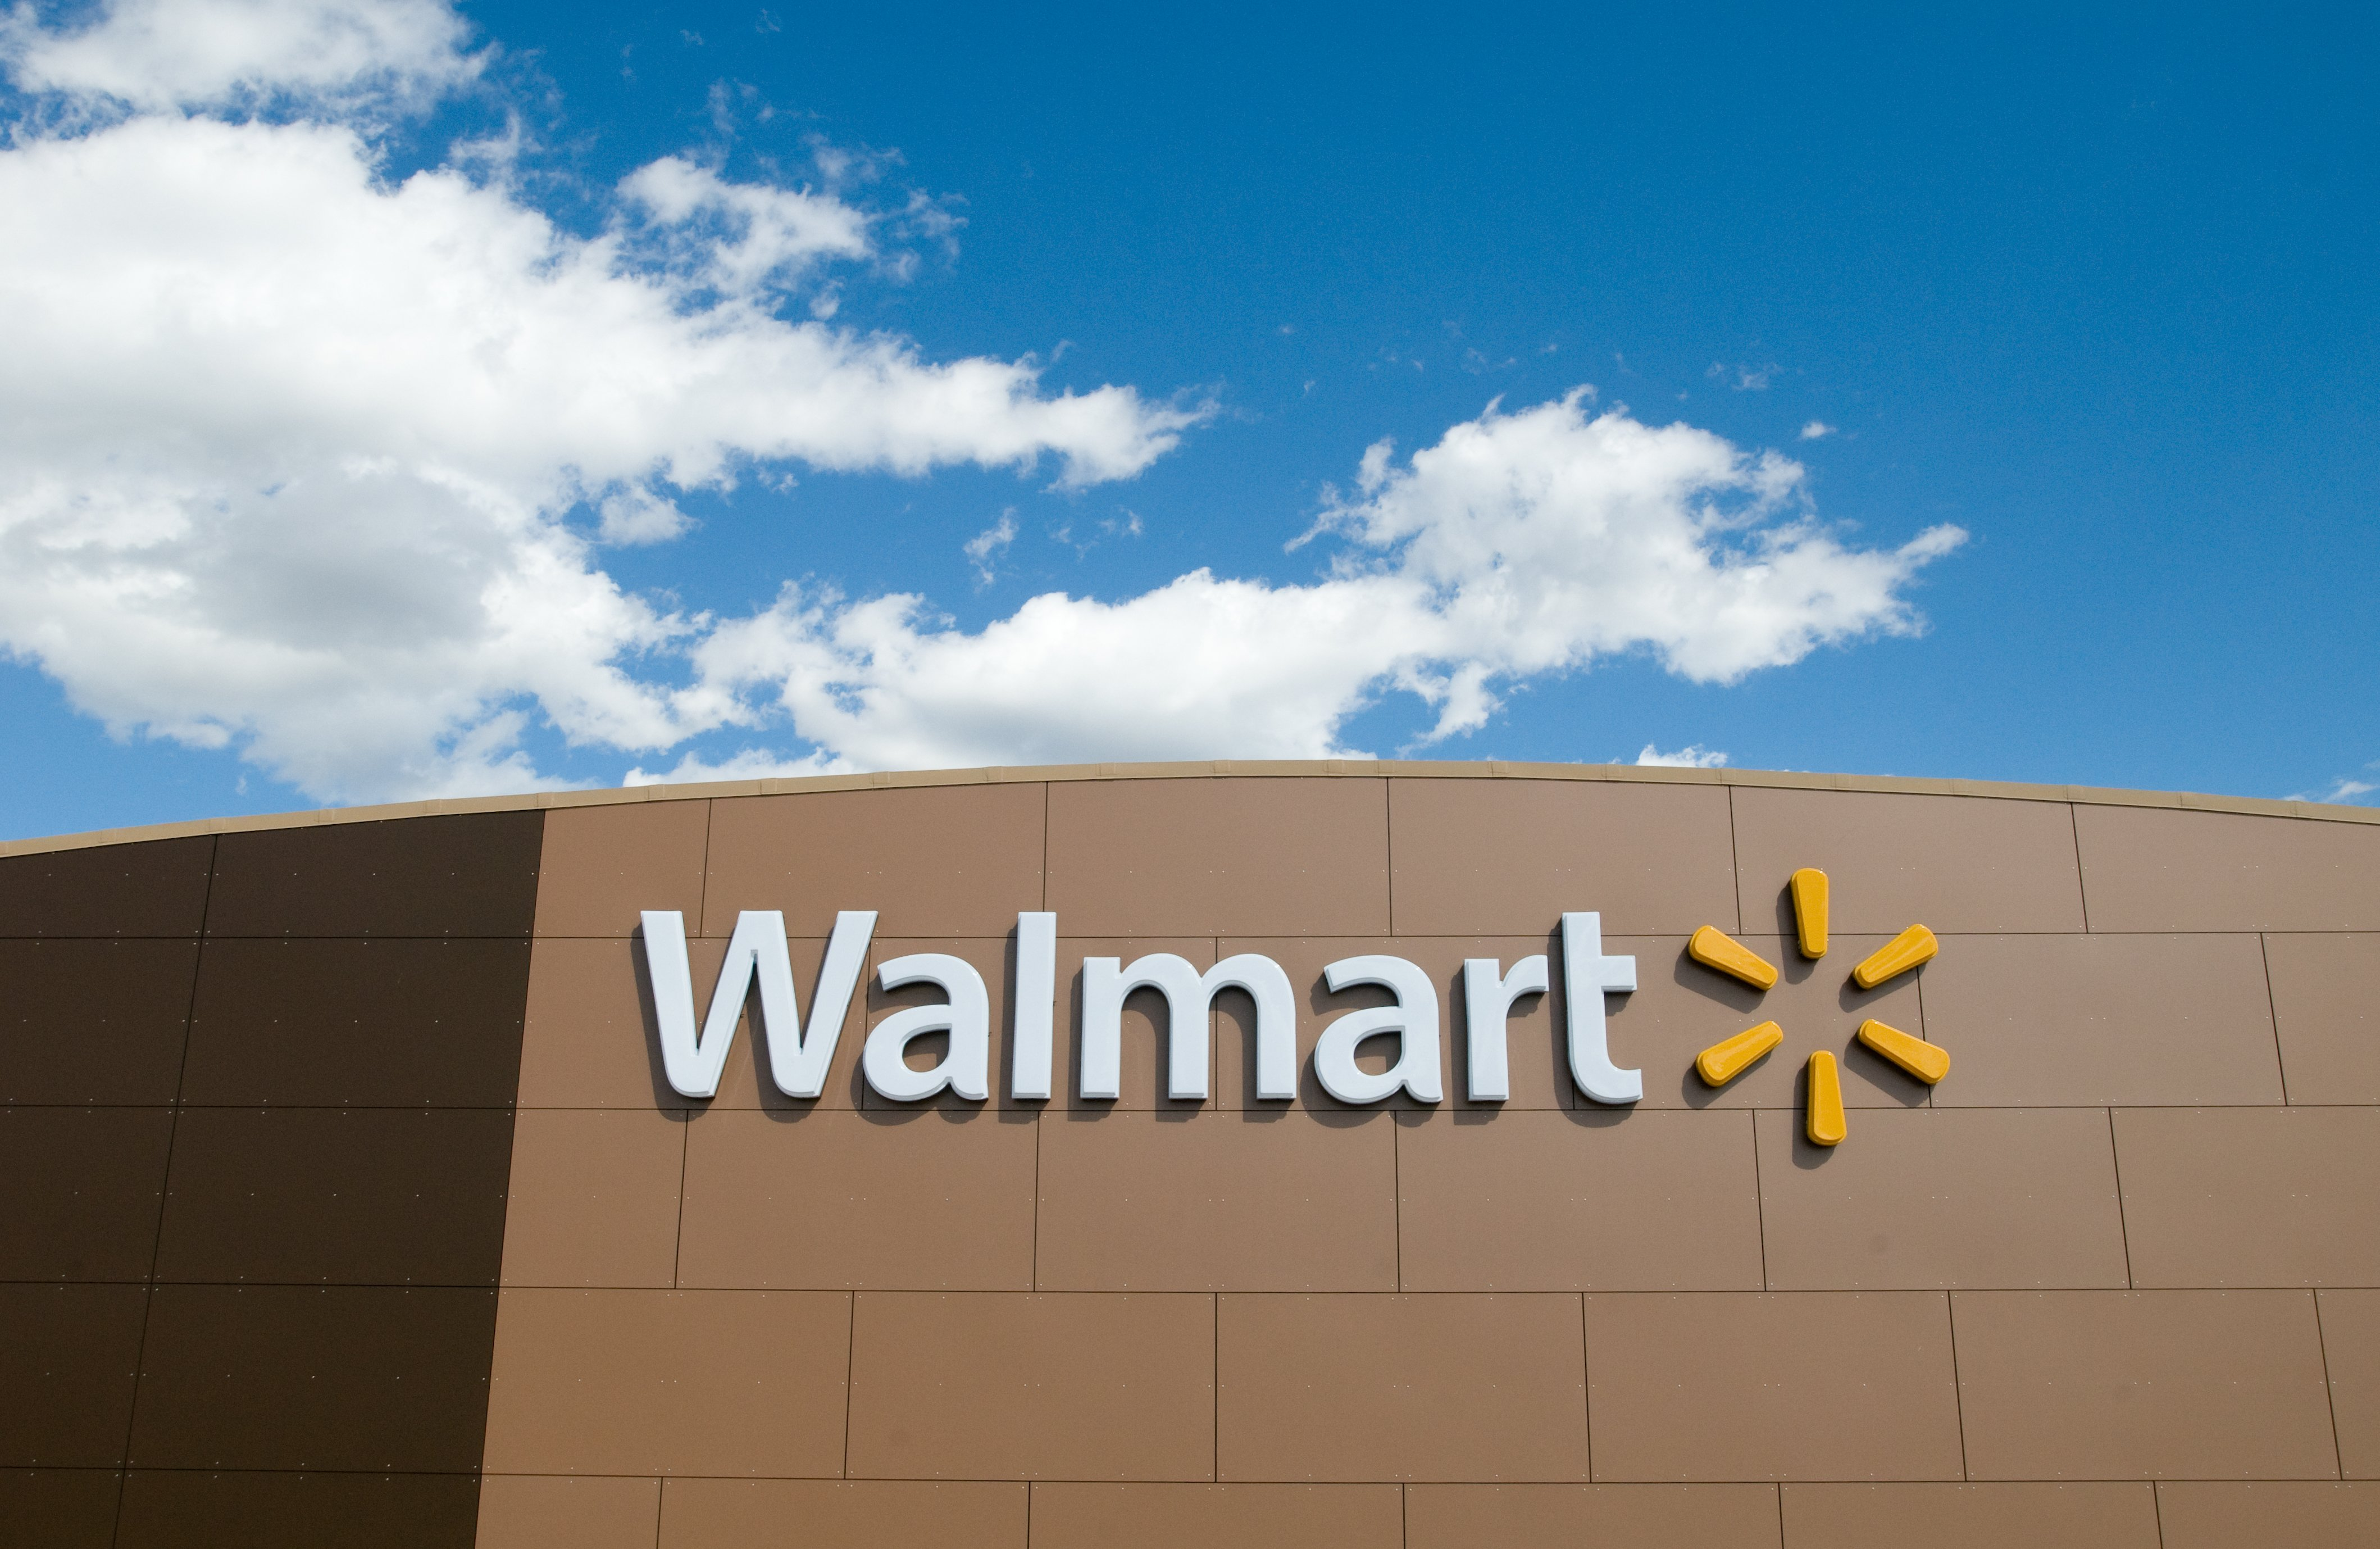 New Wal-Mart HQ Could Be $1 Billion Investment | Fort Smith ...